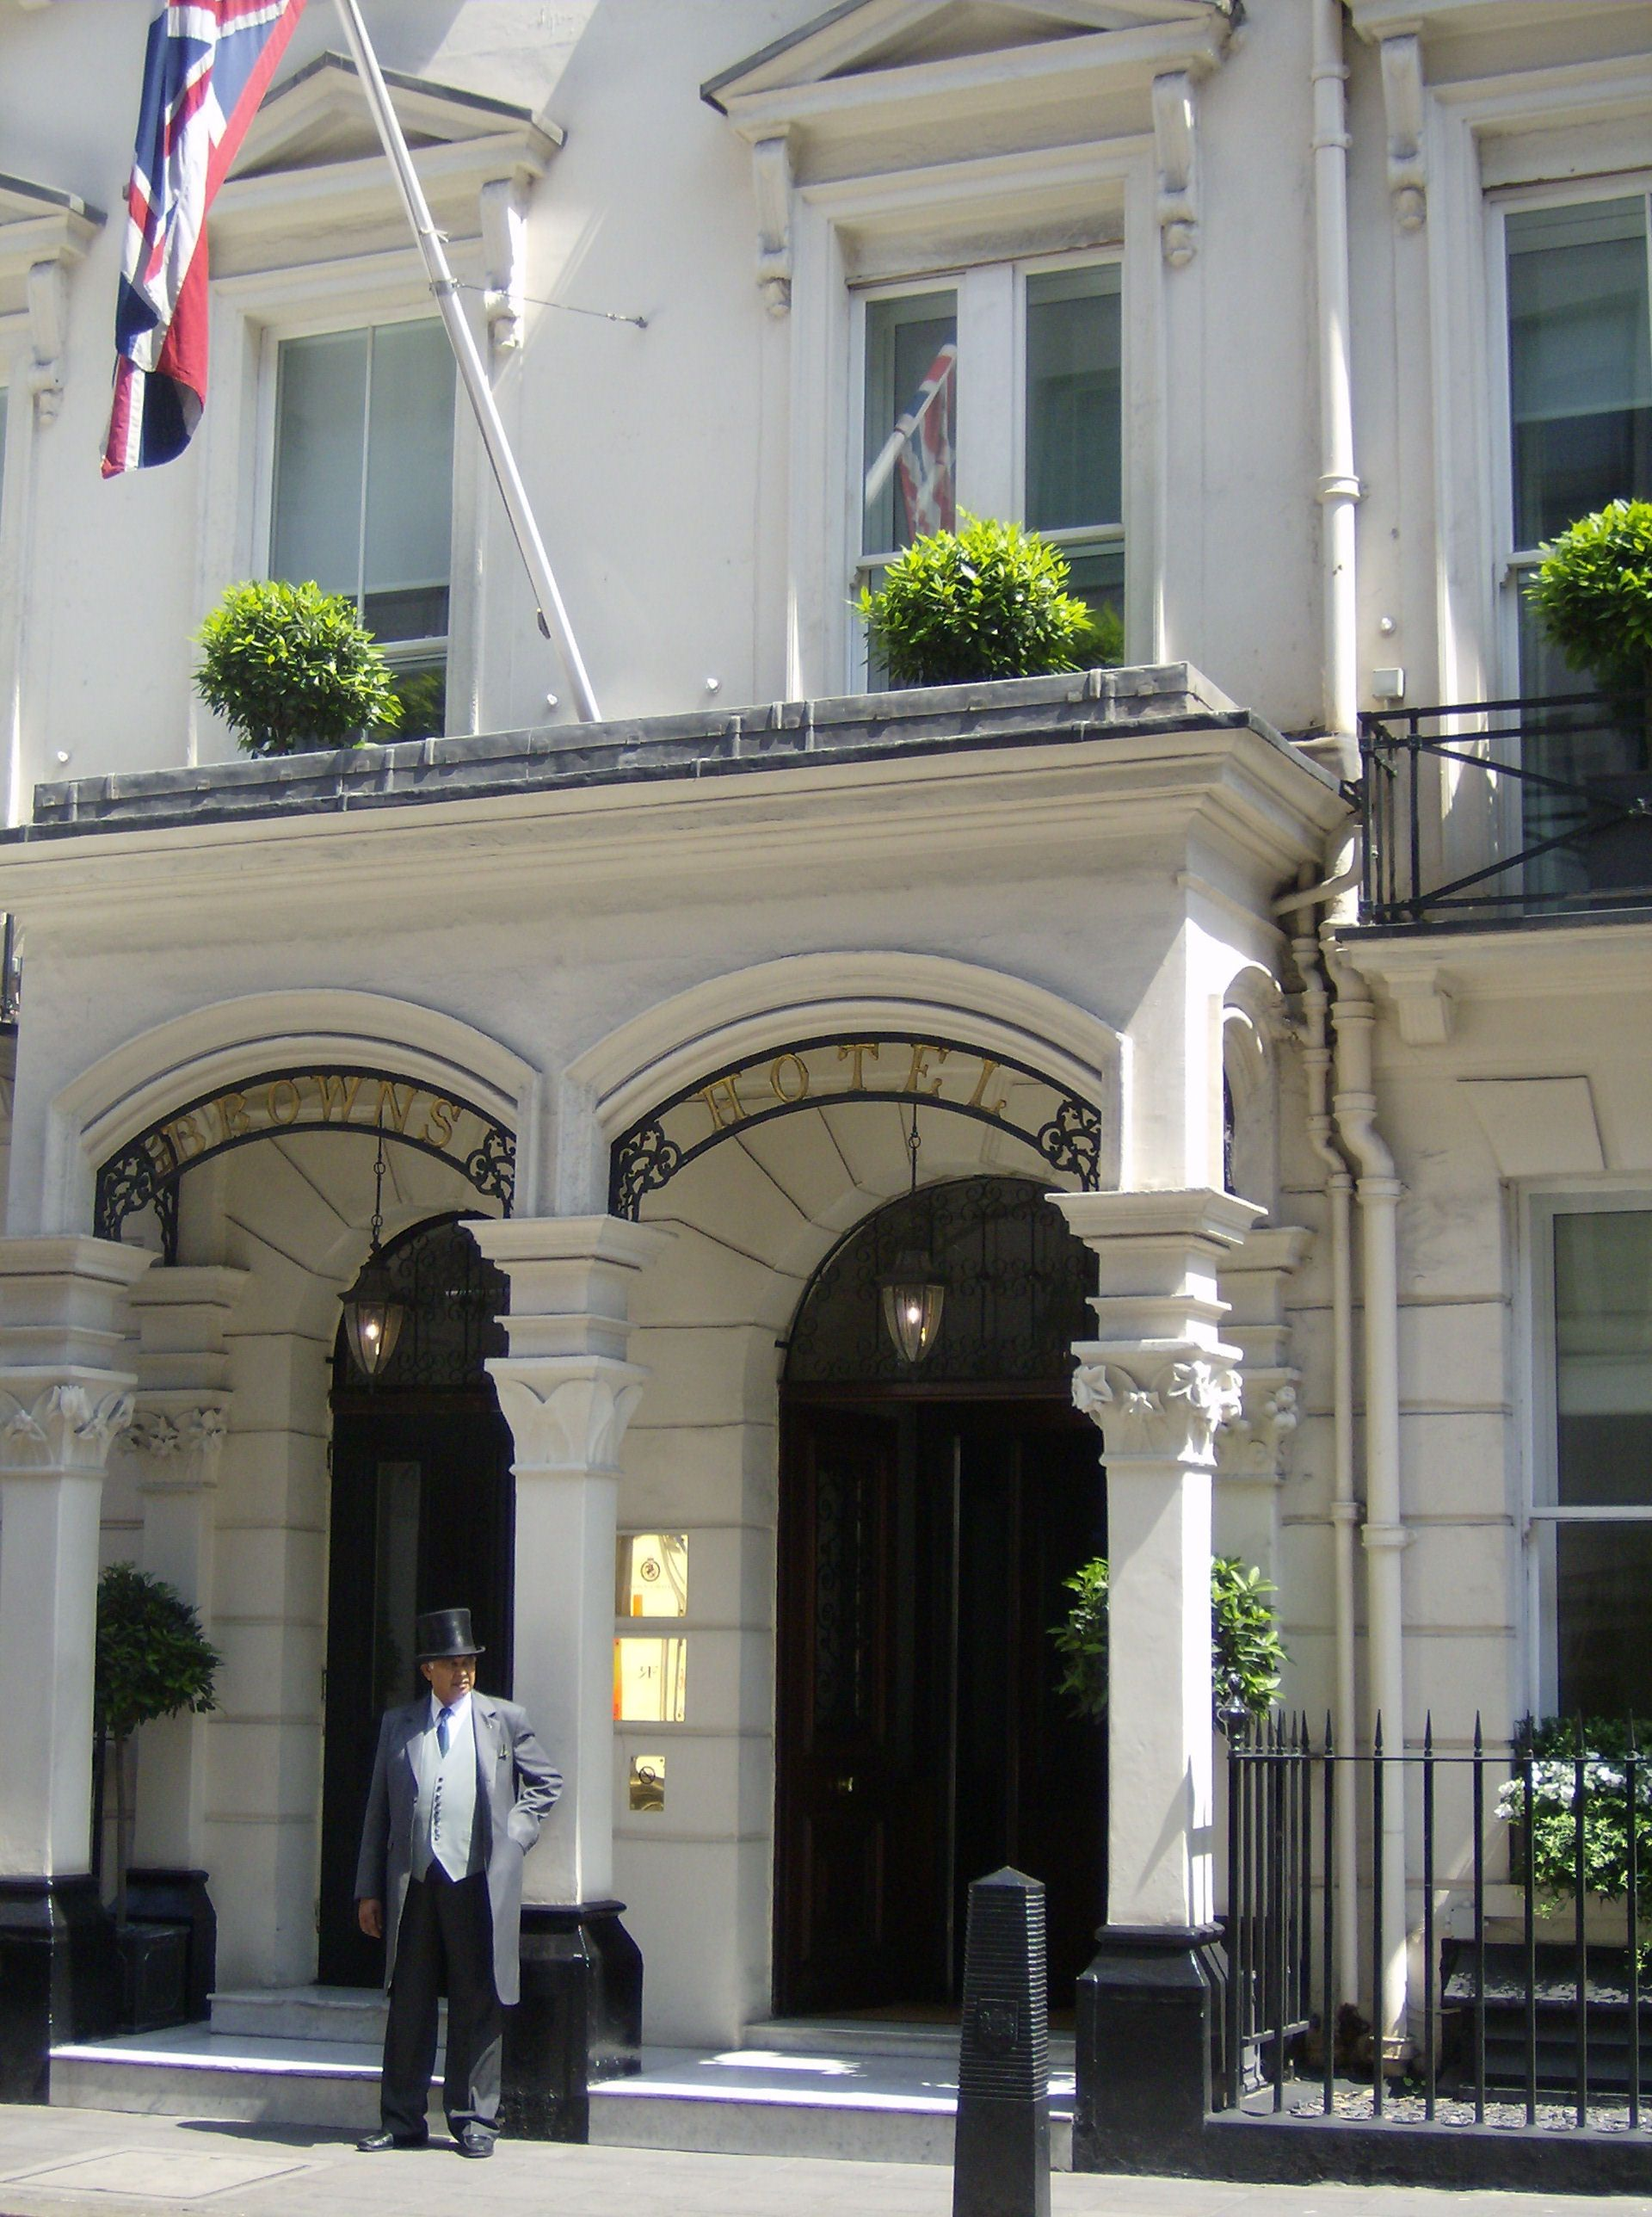 London's First Hotel. Opened In 1837 Had